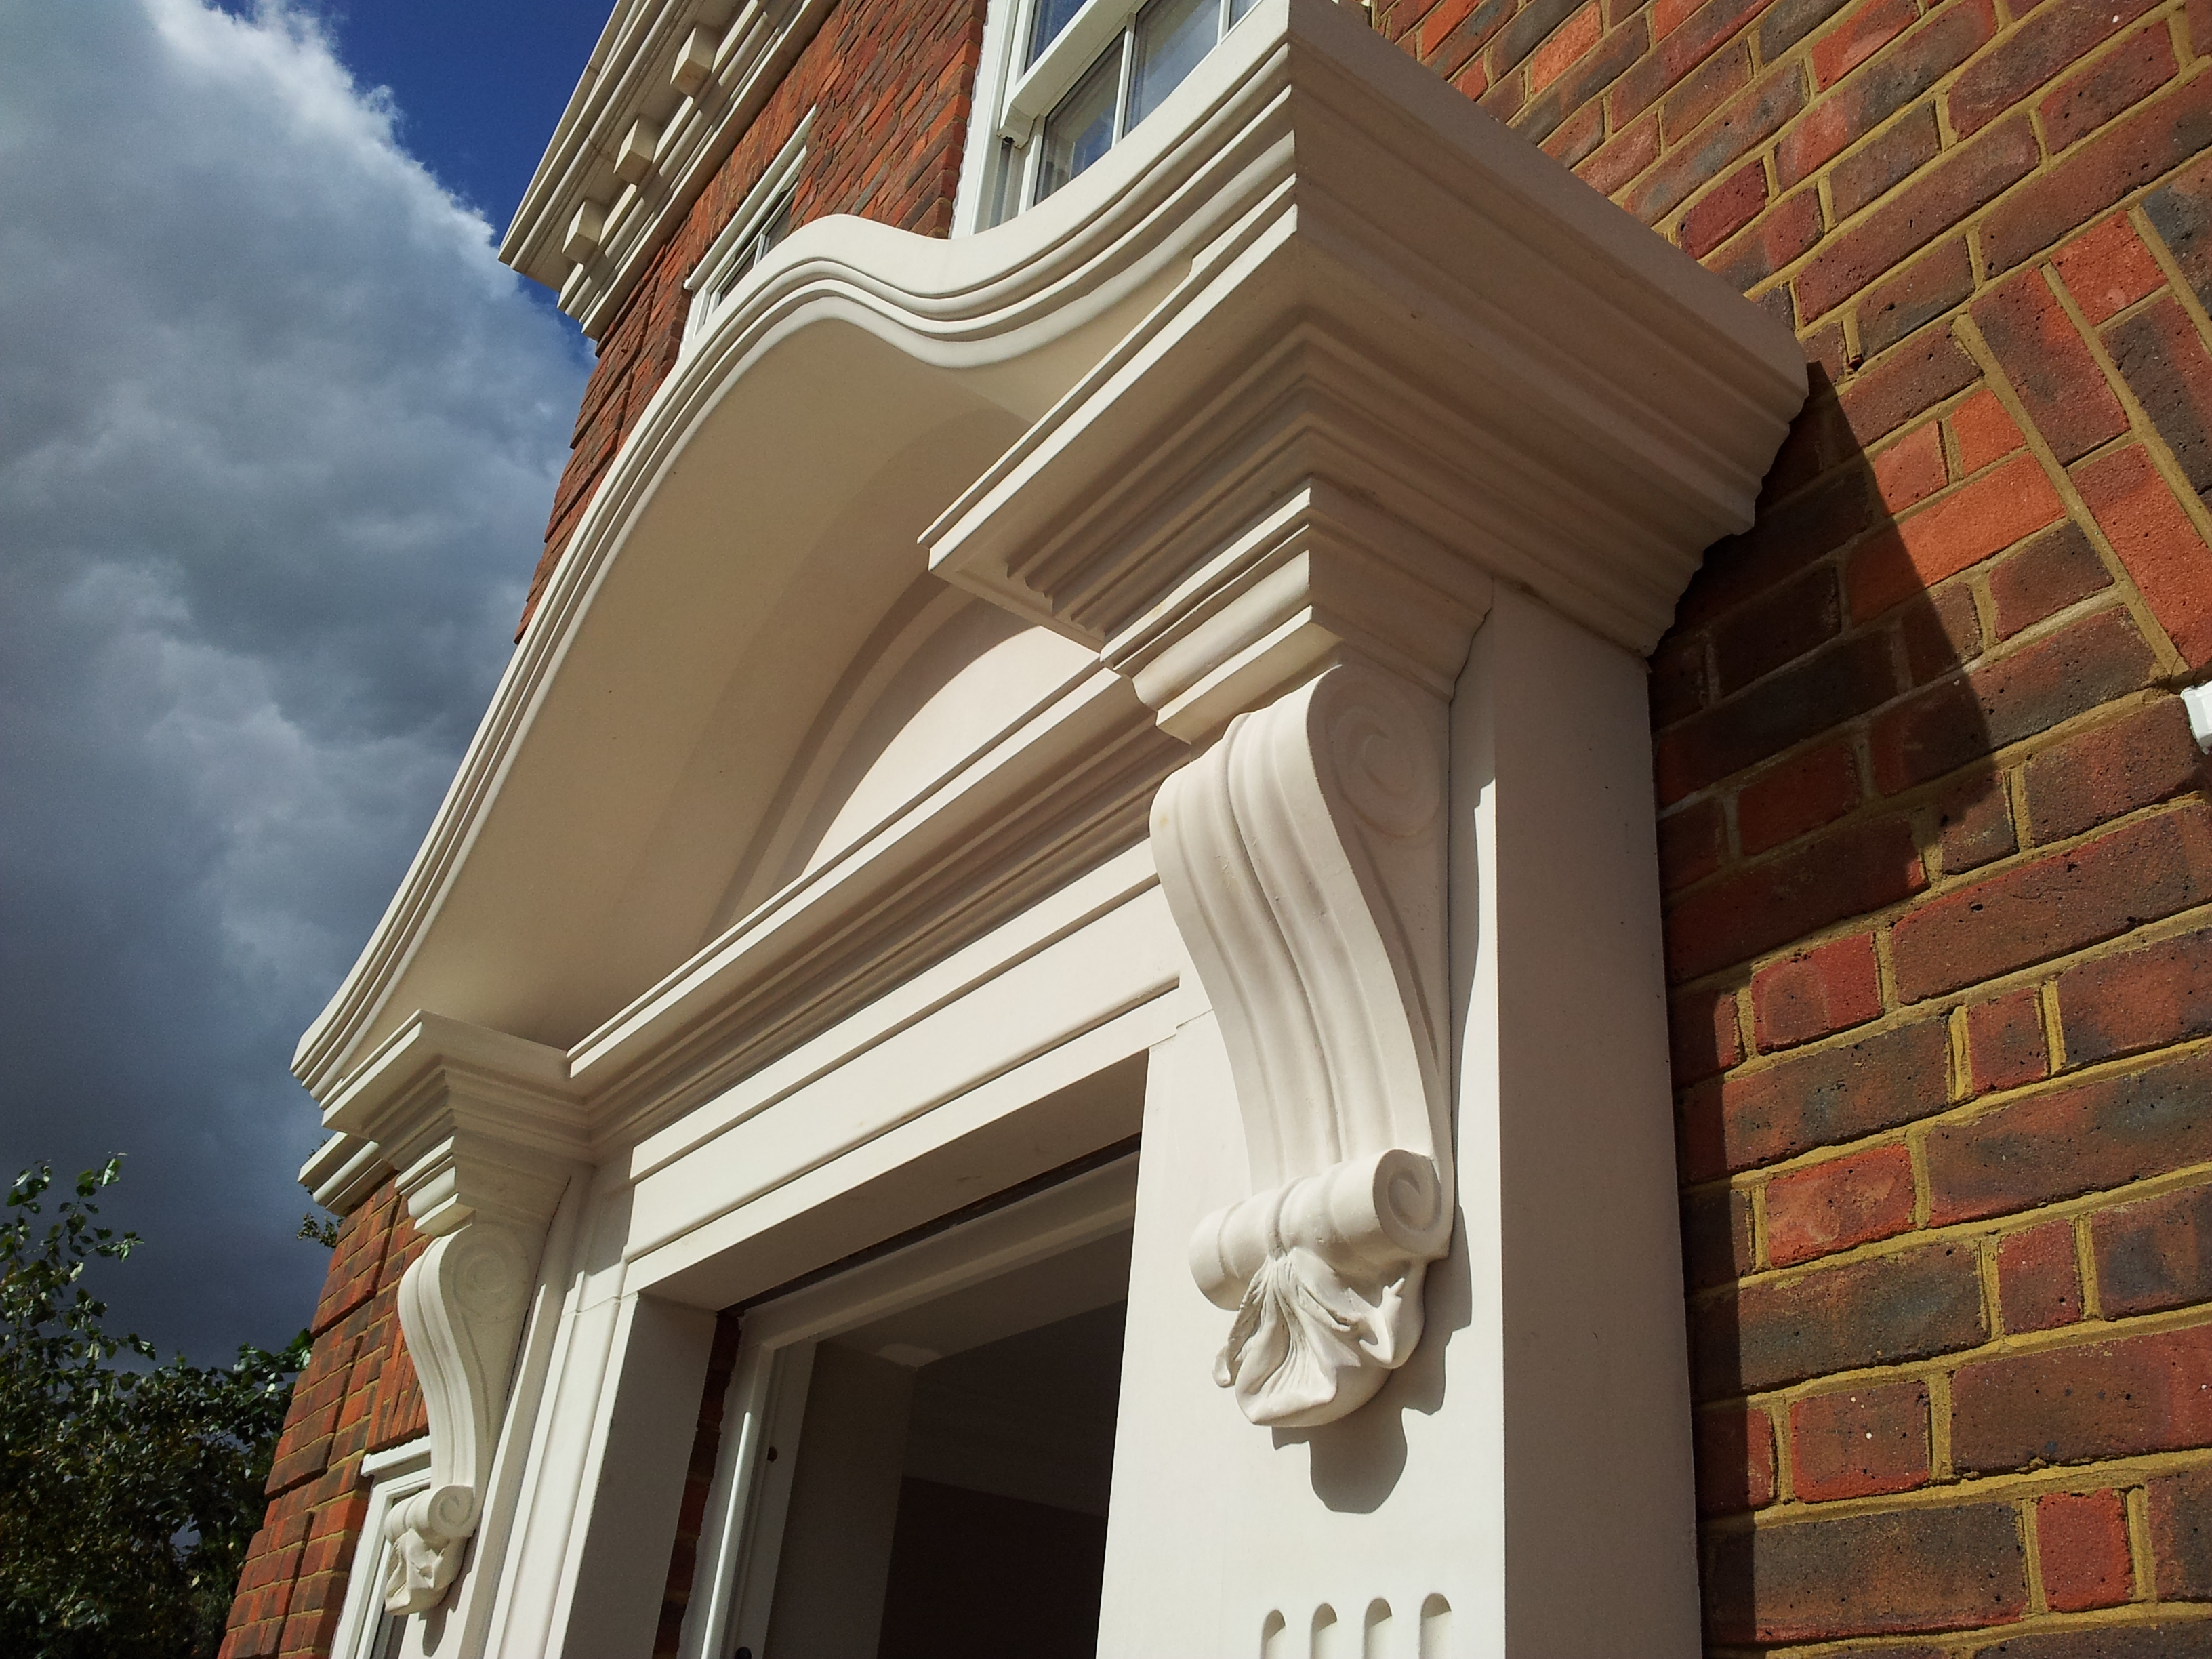 Meadow House door surround (B96)